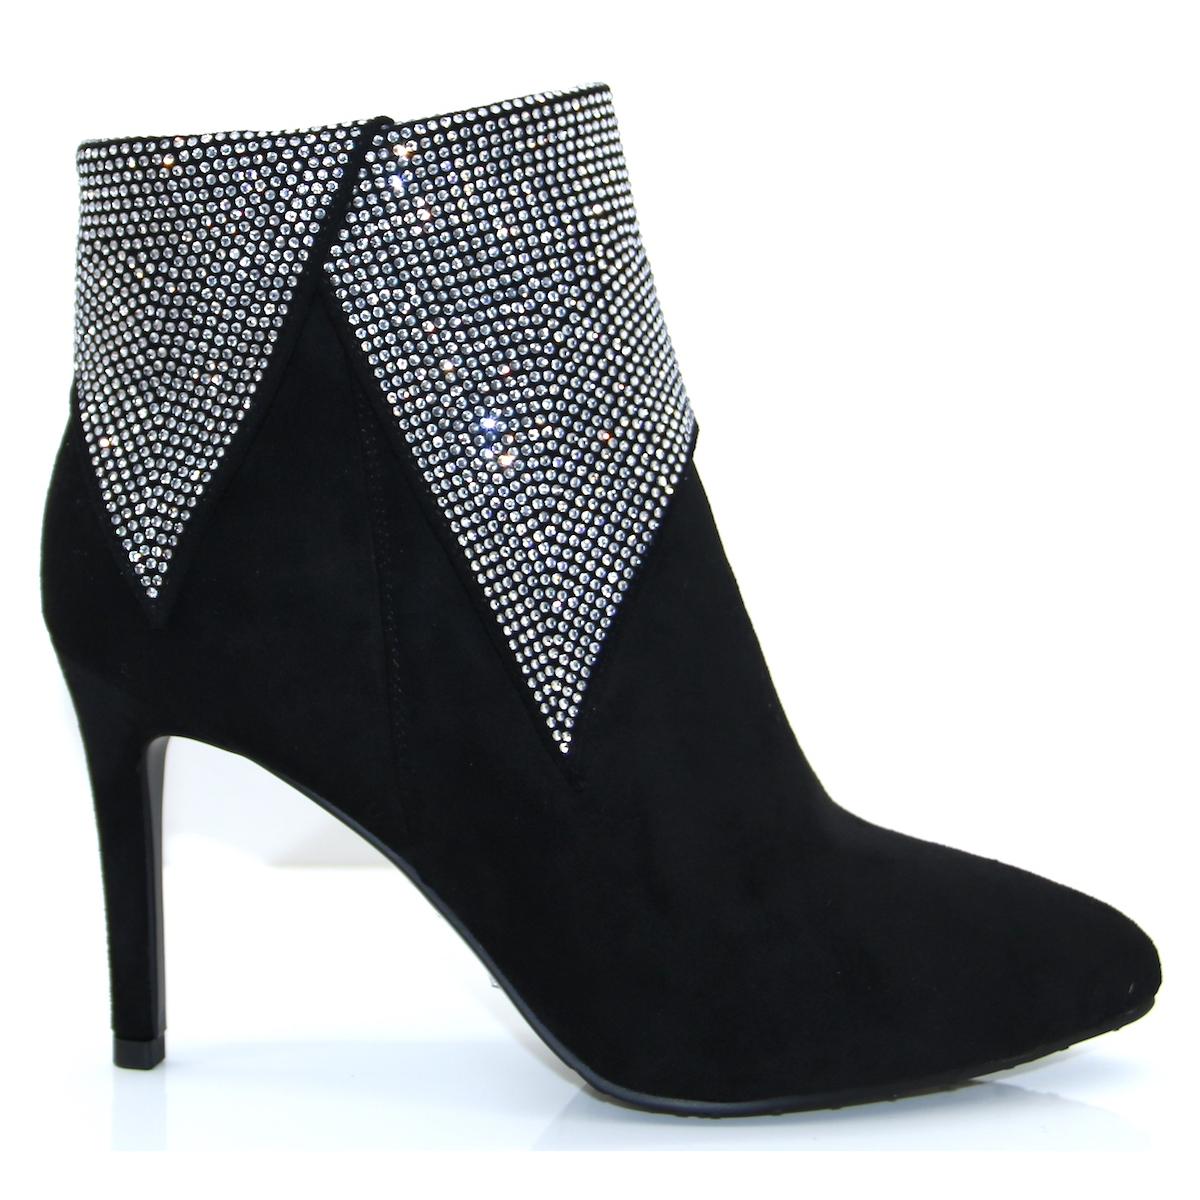 Lunar Black and Diamante Ankle Boots